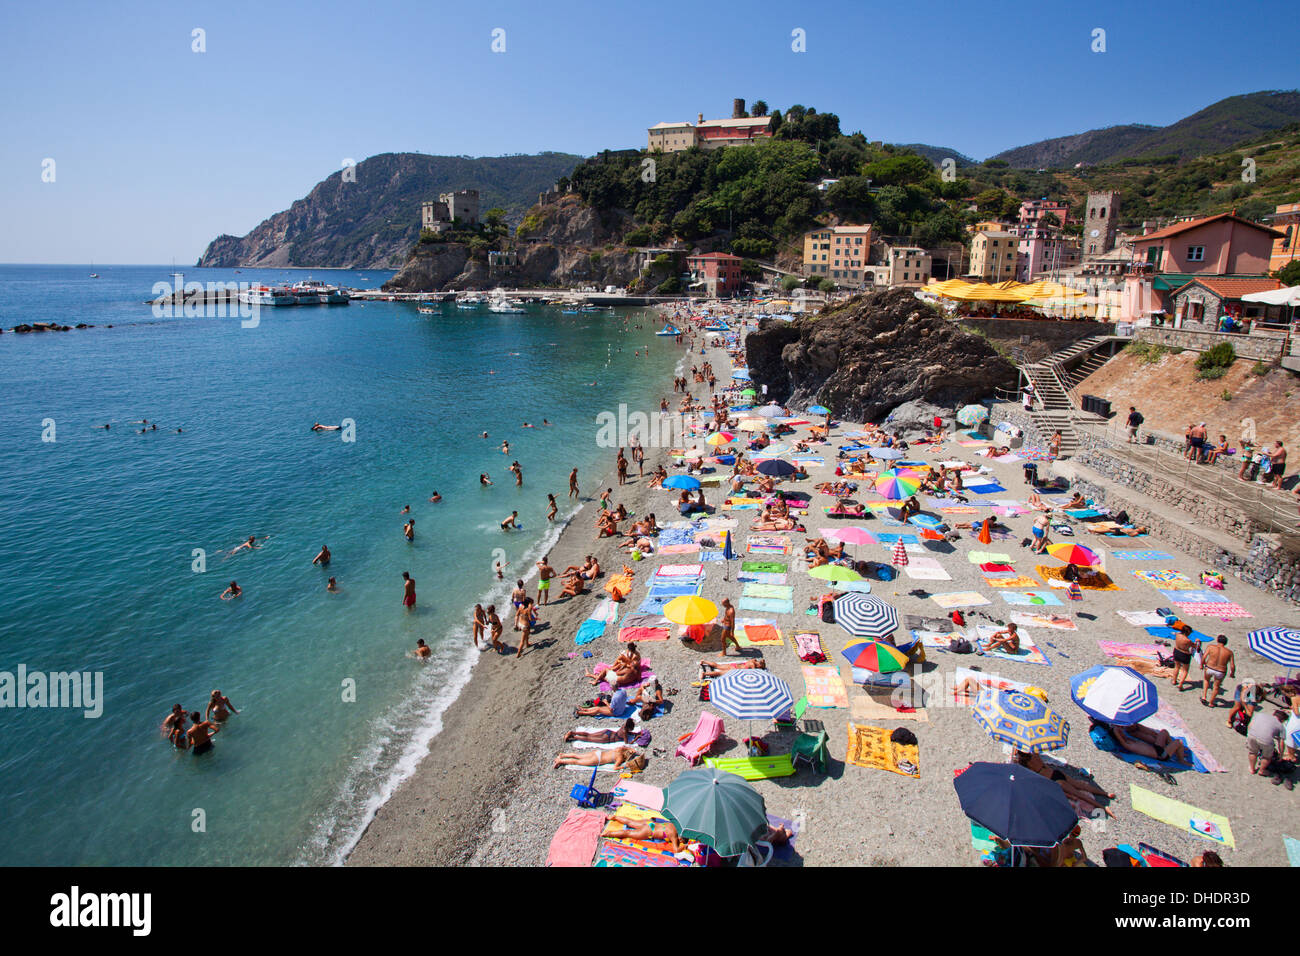 The Free Beach in the Old Town at Monterosso al Mare, Cinque Terre, UNESCO World Heritage Site, Liguria, Italy, Mediterranean - Stock Image